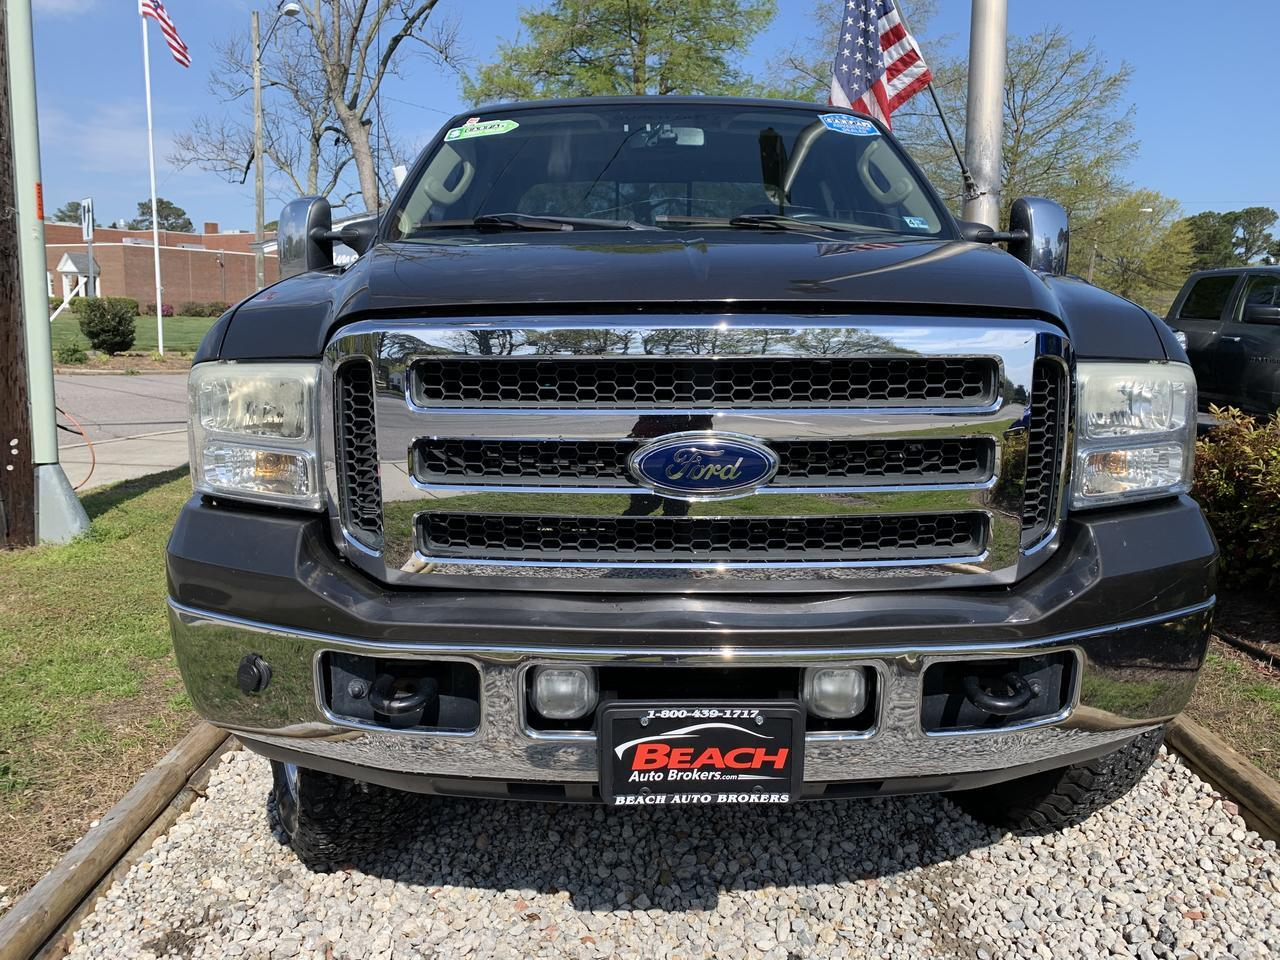 2007 FORD F-250 LARIAT CREW CAB 4X4, WARRANTY, DIESEL, FX4 OFF ROAD PKG, LEATHER, BACKUP CAM, HEATED SEATS! Norfolk VA